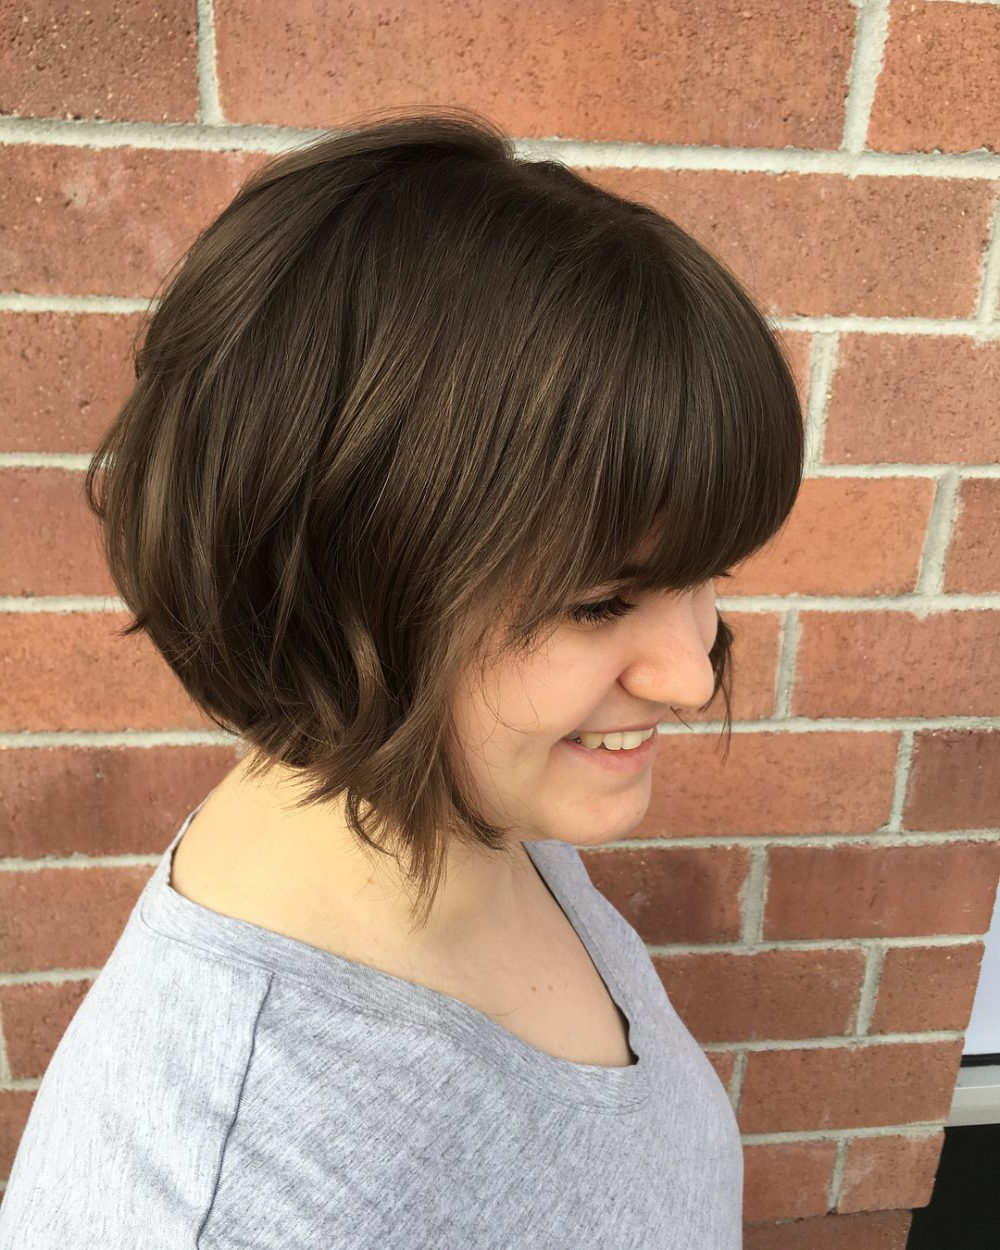 34 Greatest Short Haircuts And Hairstyles For Thick Hair For 2018 Throughout Layered Pixie Hairstyles With Textured Bangs (Gallery 20 of 20)